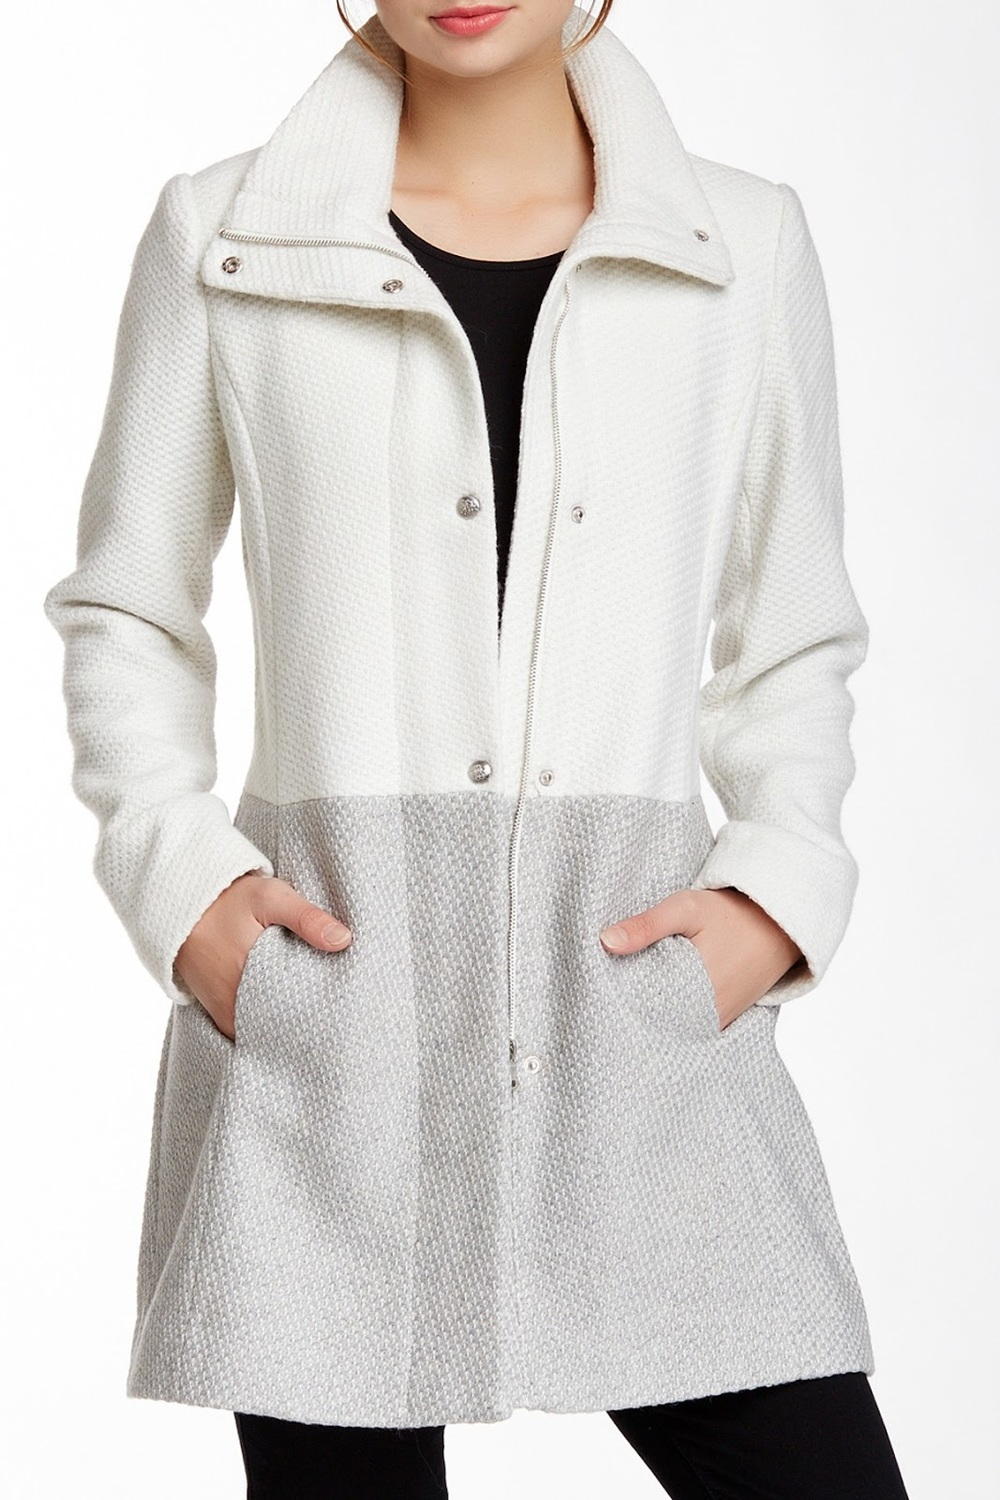 Jessica Simpson Colorblock Textured Knit Coat in Off-White/Gray, $95 at NordstromRack.com (also available in Charcoal/Black).